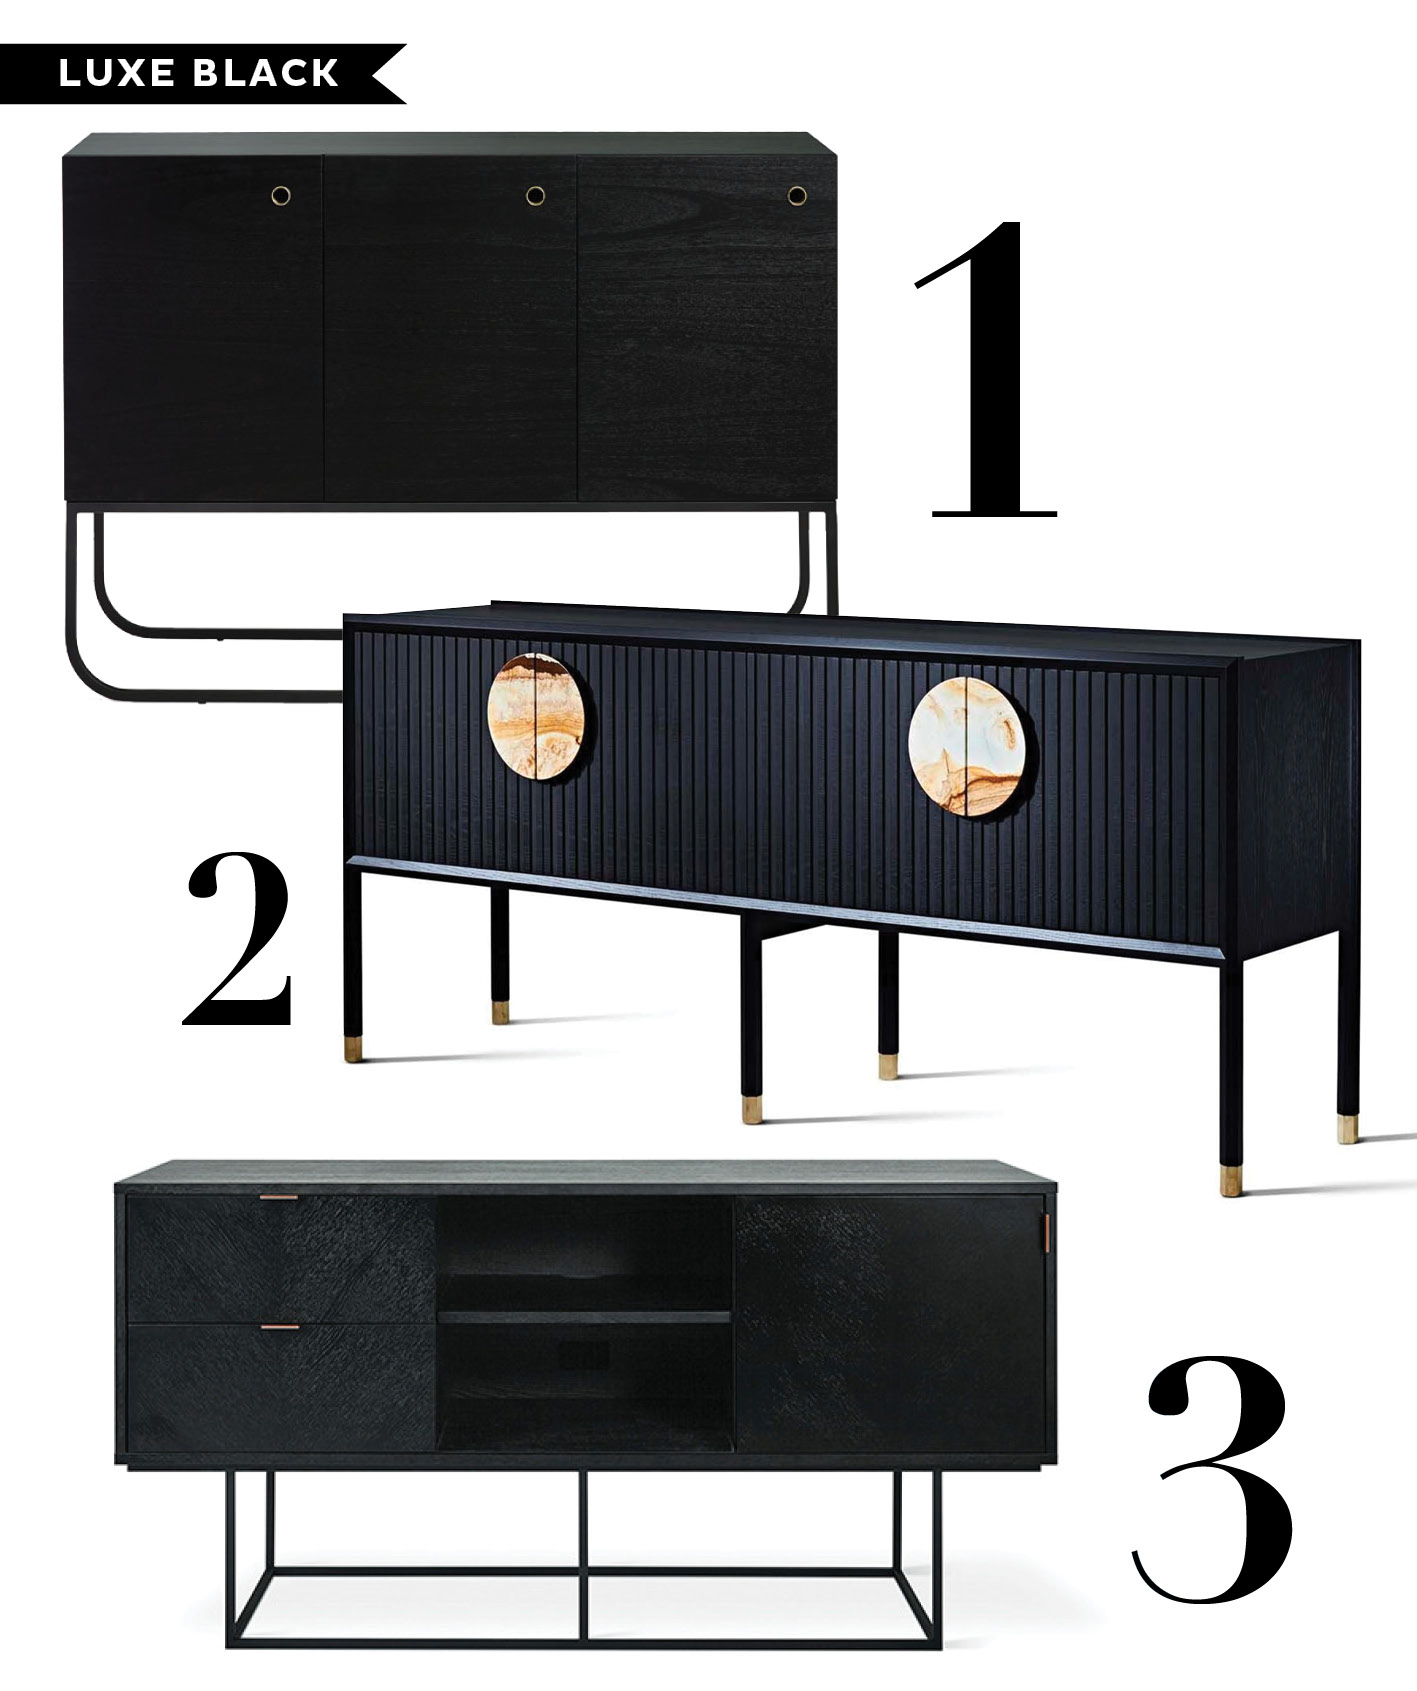 adore_home_magazine_LUXE_BLACK_sideboards_top3_furniture_buffet.jpg